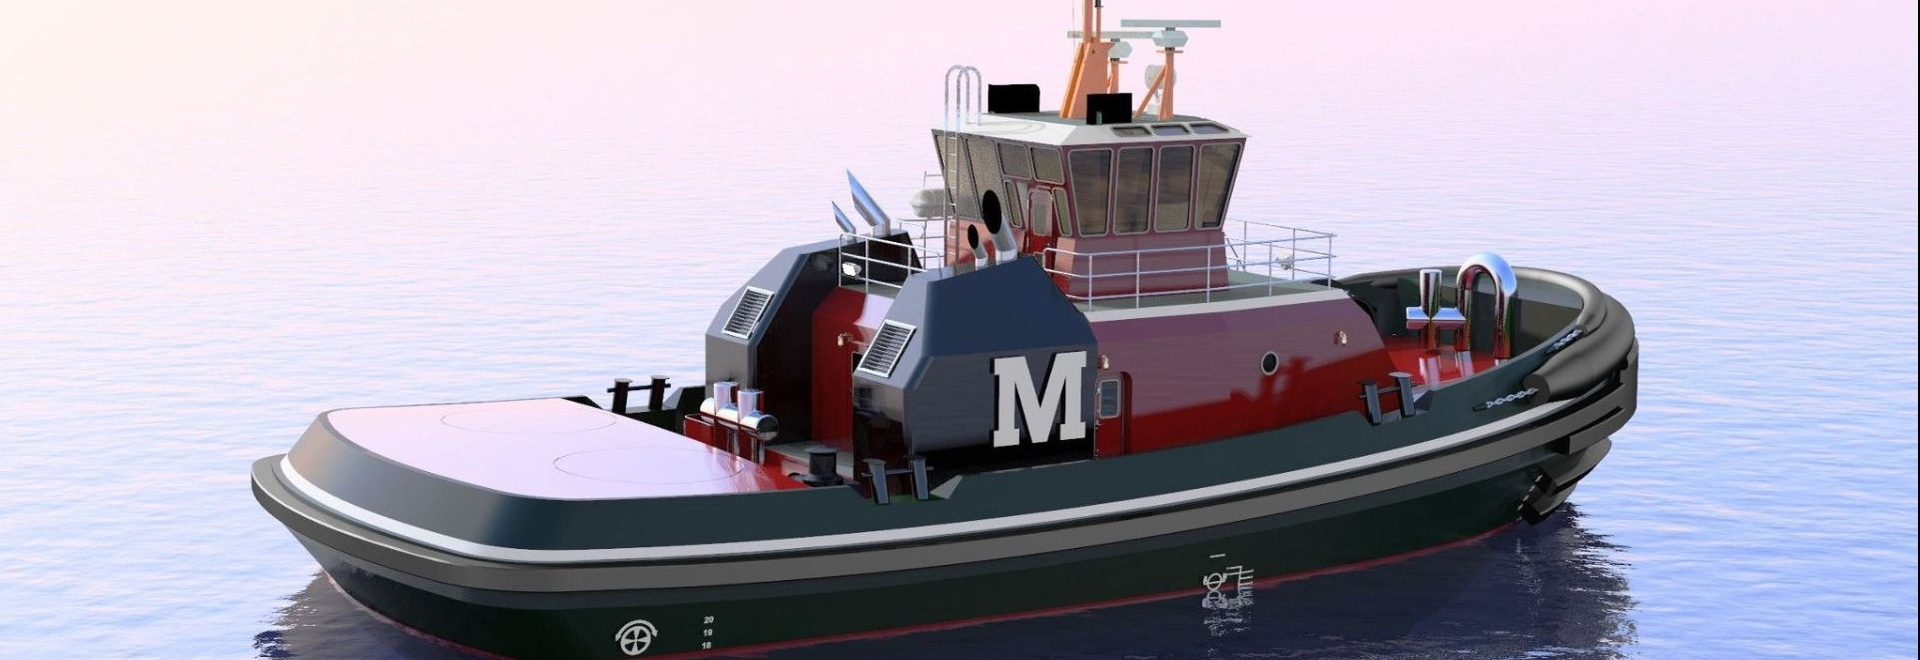 NEW ASSIST AND ESCORT TUGS FOR MORAN TOWING